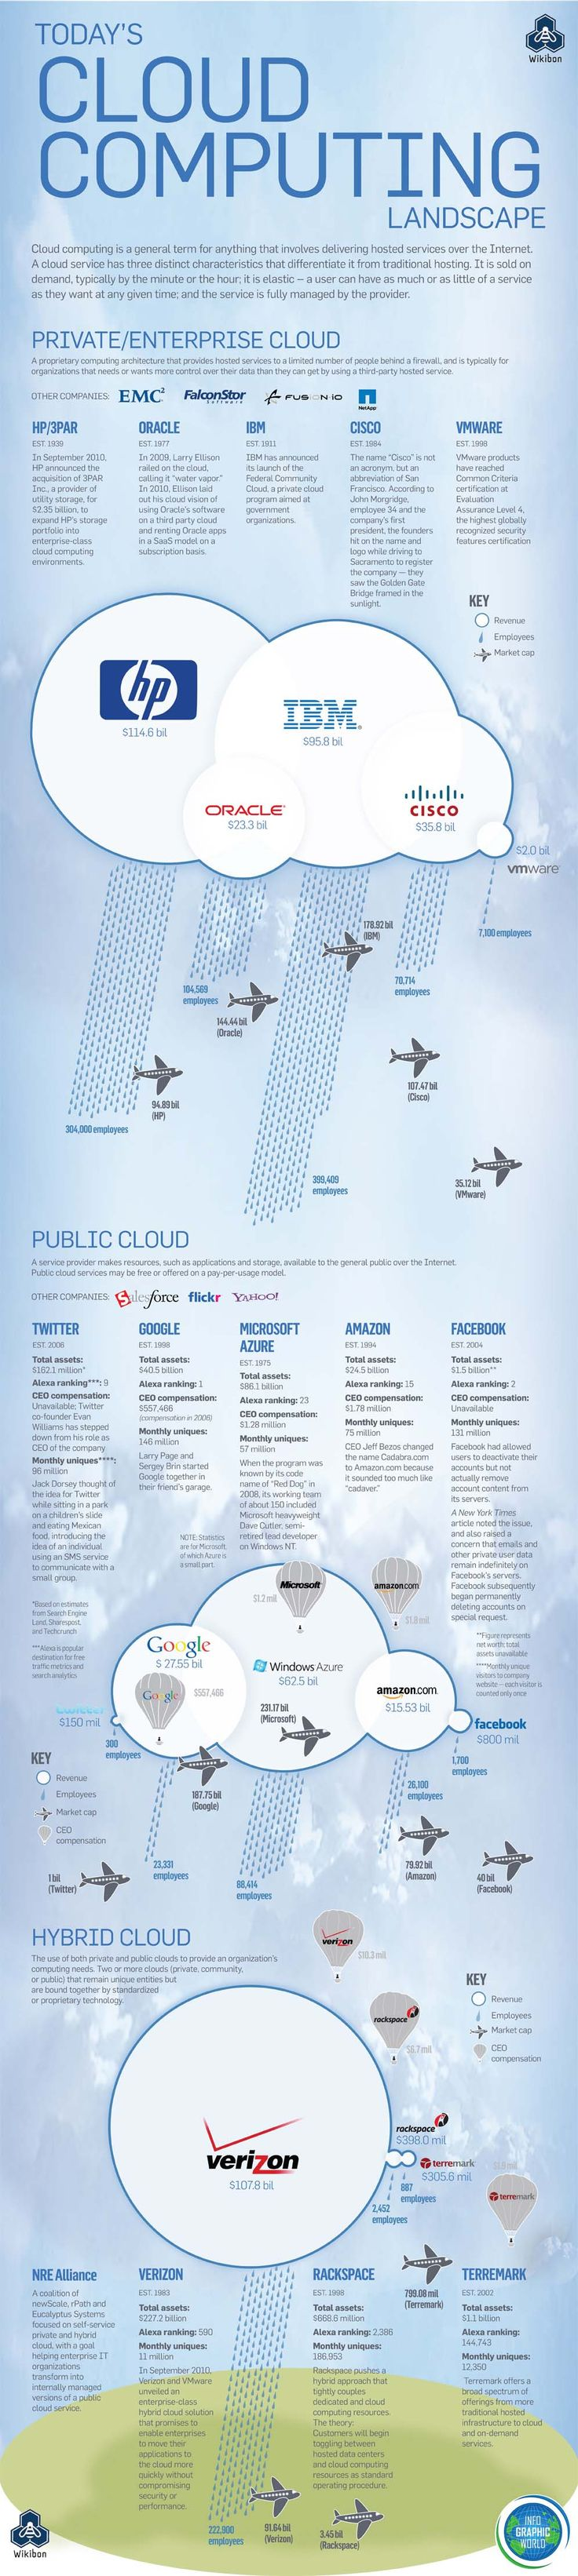 A Muddled Look at Today's Cloud Computing Landscape [Infographic] http://www.tykans.com